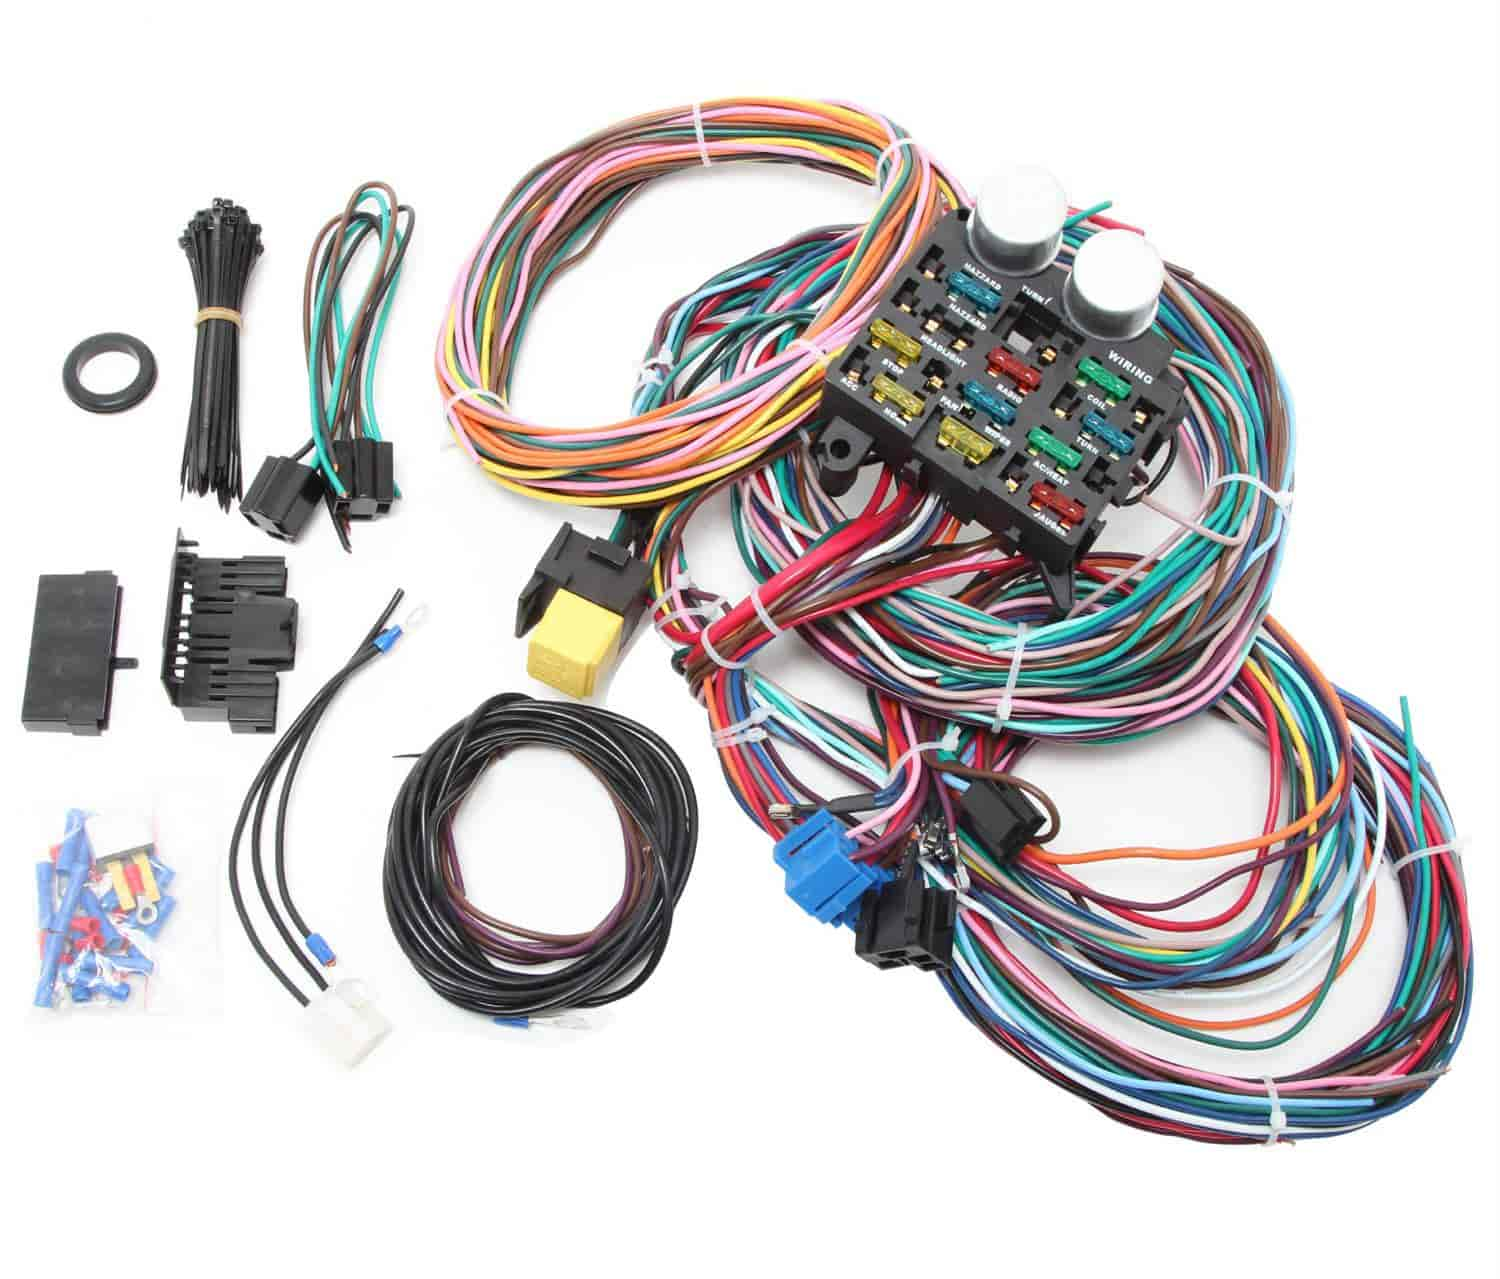 707 r1002x rpc r1002x universal 12 circuit wire harness kit jegs VW Wiring Harness Kits at creativeand.co